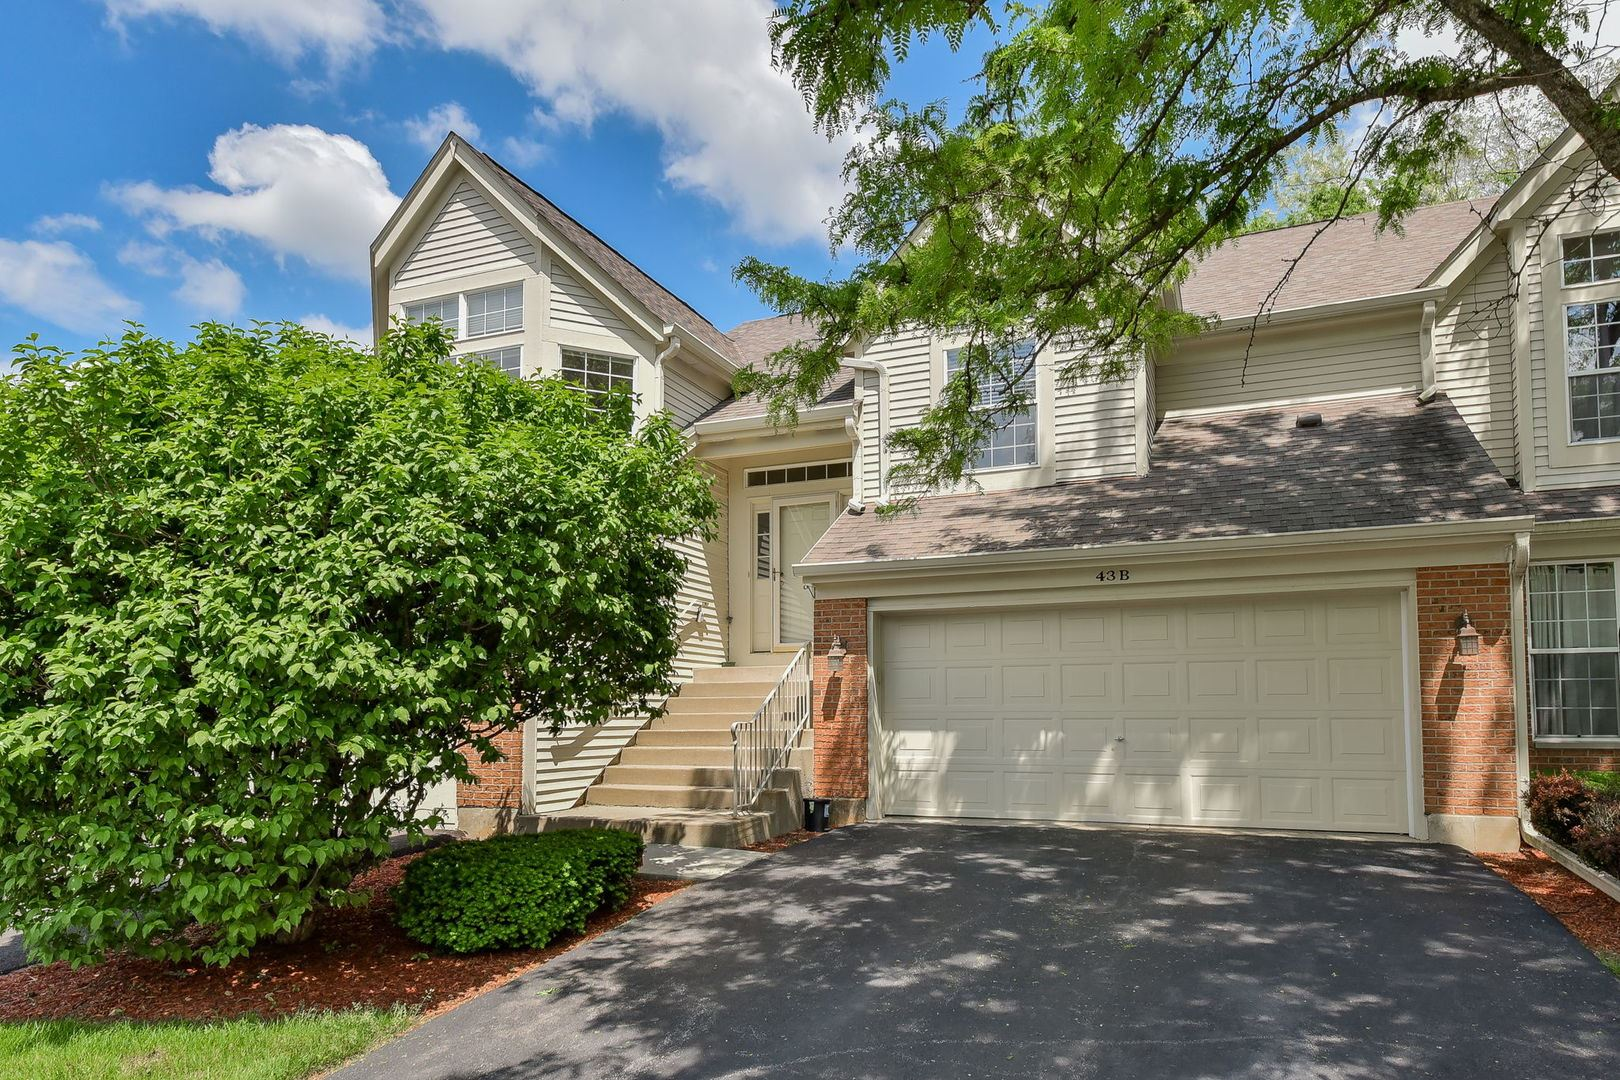 43 Ione Drive #B, South Elgin, IL 60177 - #: 10662628